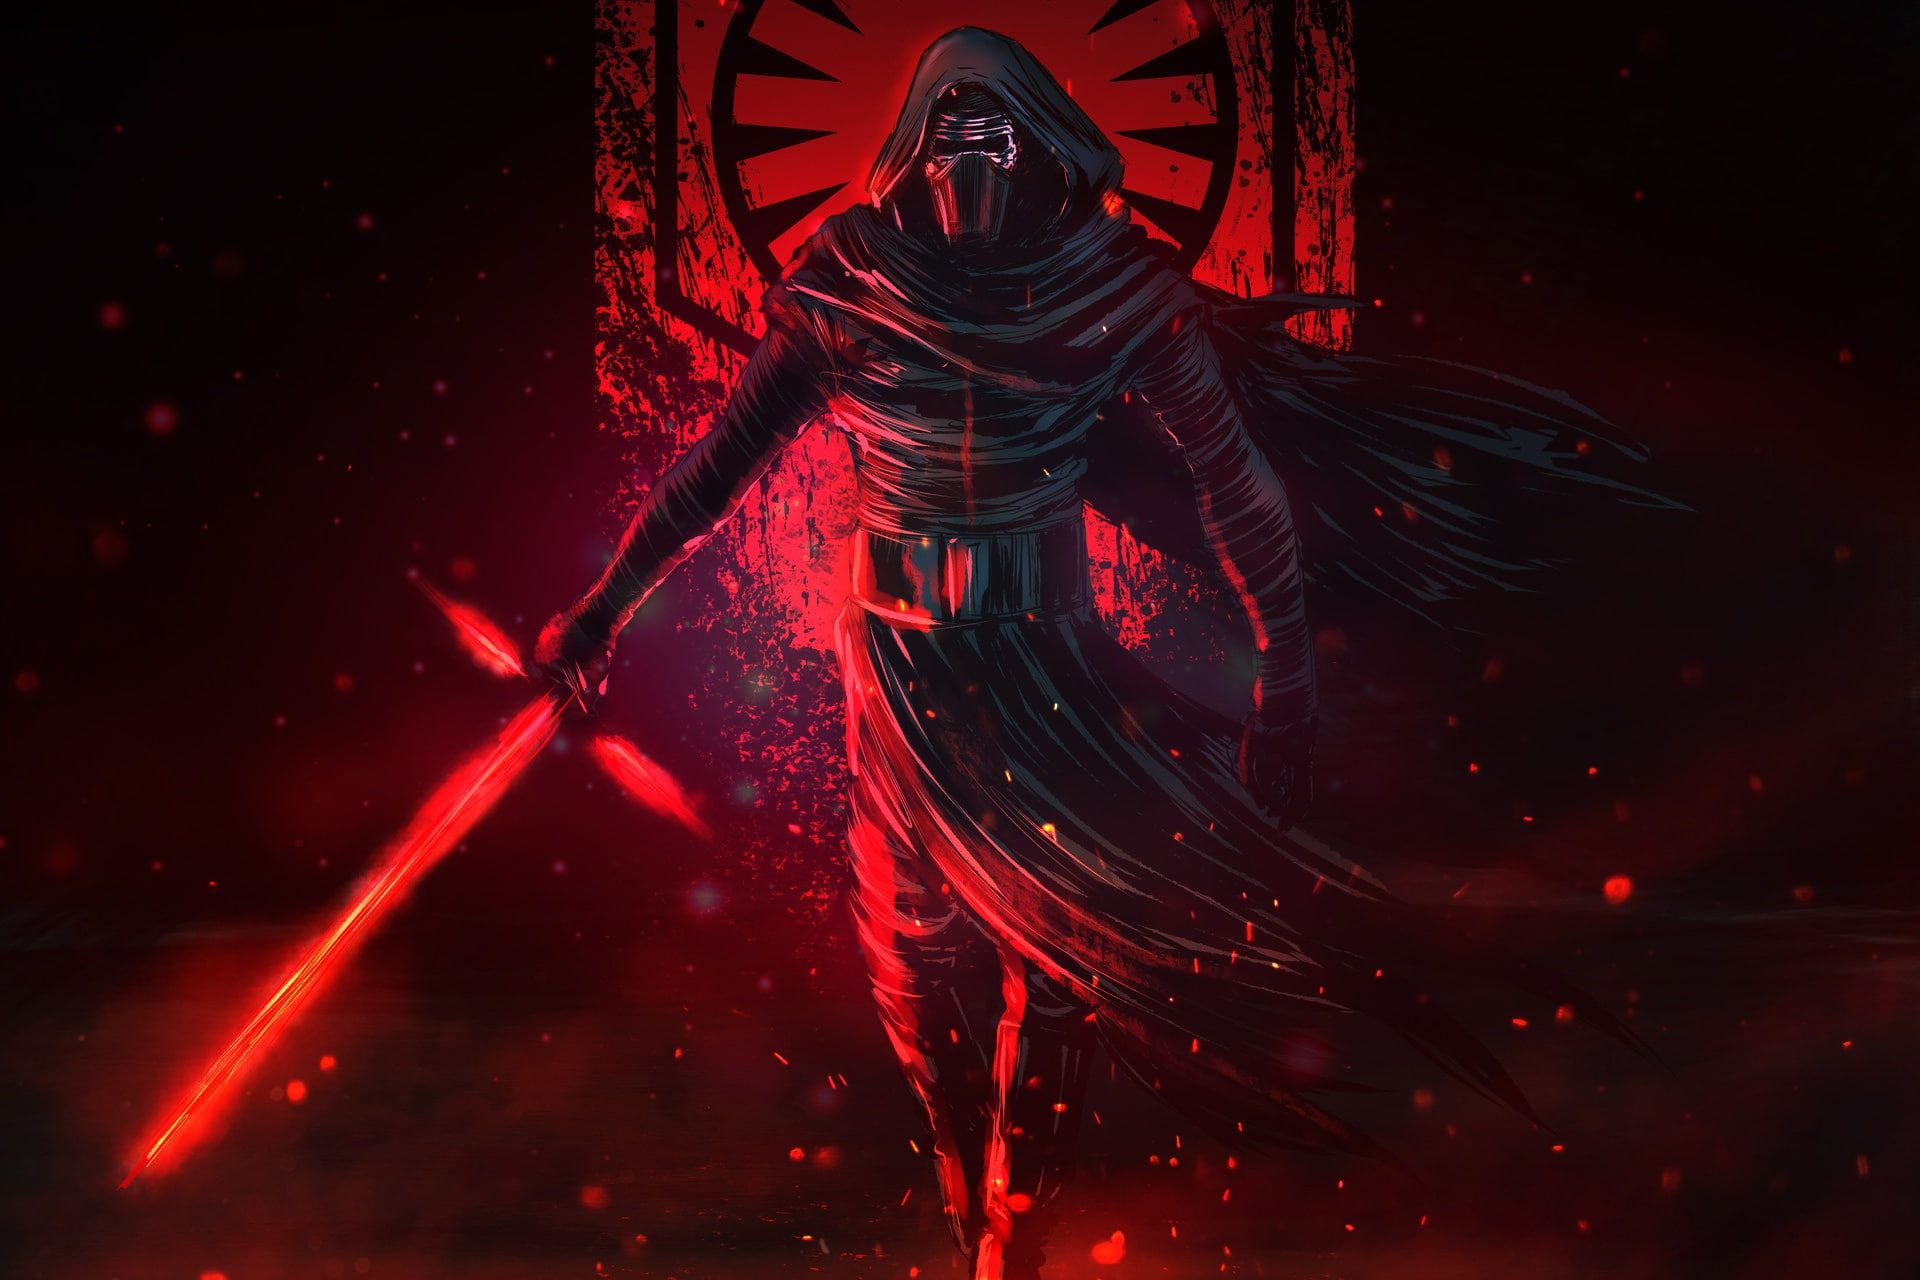 Pin By Lootfees On Star Wars In 2020 Kylo Ren Wallpaper Star Wars Wallpaper Star Wars Kylo Ren